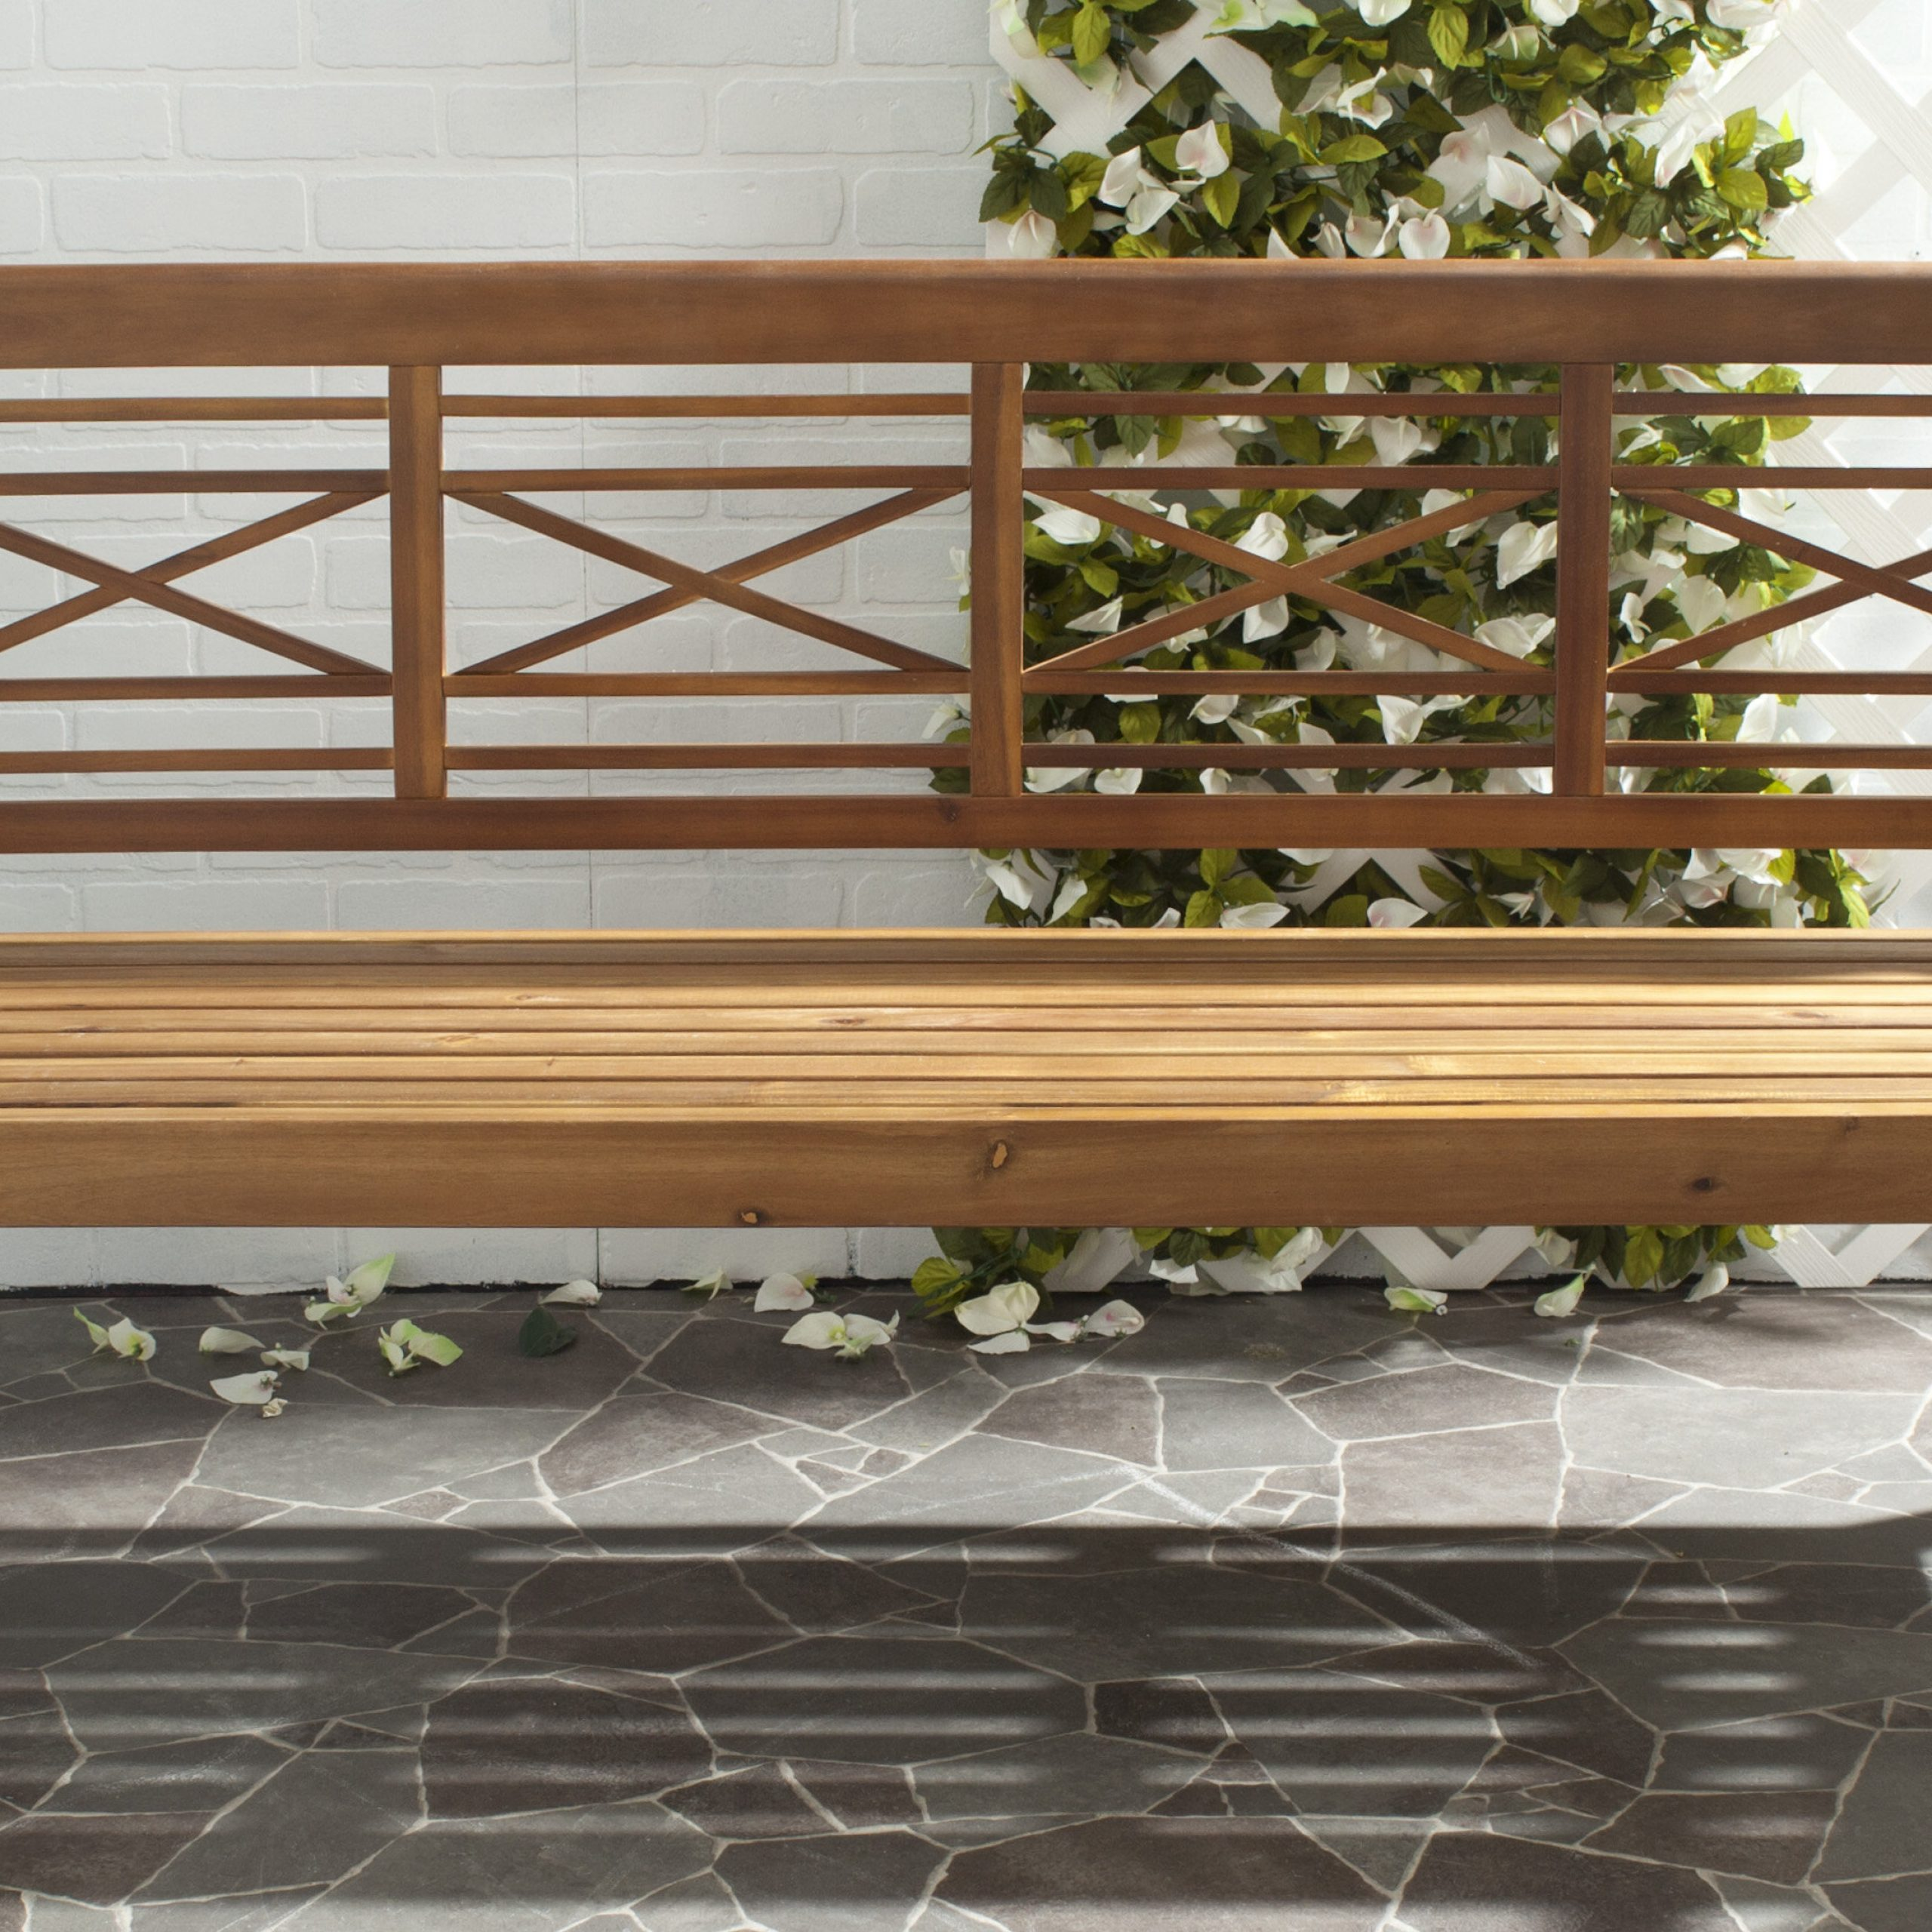 Putnam Garden Bench With Regard To Widely Used Elsner Acacia Garden Benches (View 9 of 30)